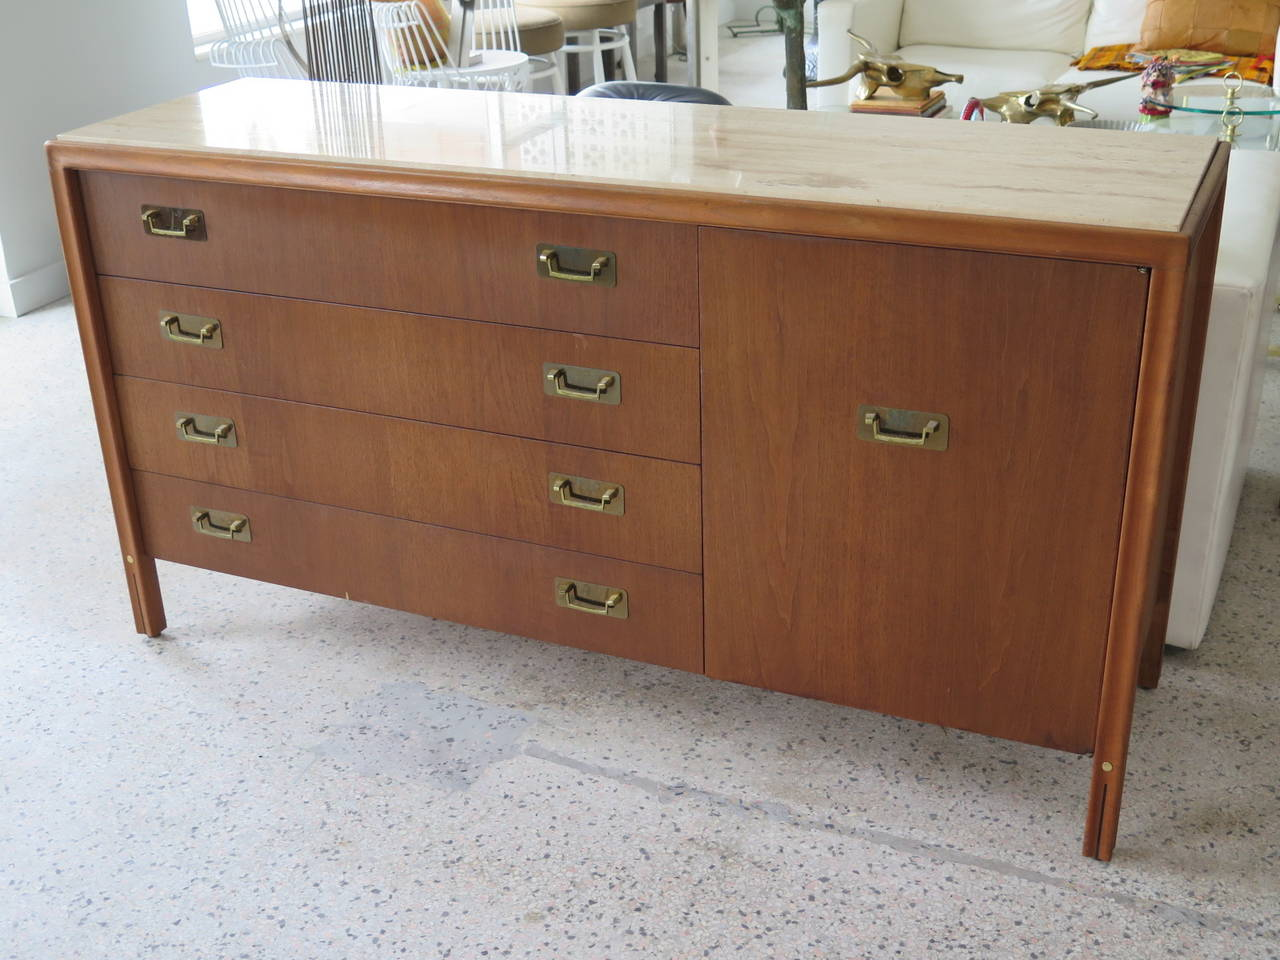 An unusual credenza by Gerry Zanck for Gregori I walnut with travertine top. Interesting brass handles and scalloped legs with brass detailing. Four drawers on one side and four smaller drawers with a door front. Finished on the back-so could easily